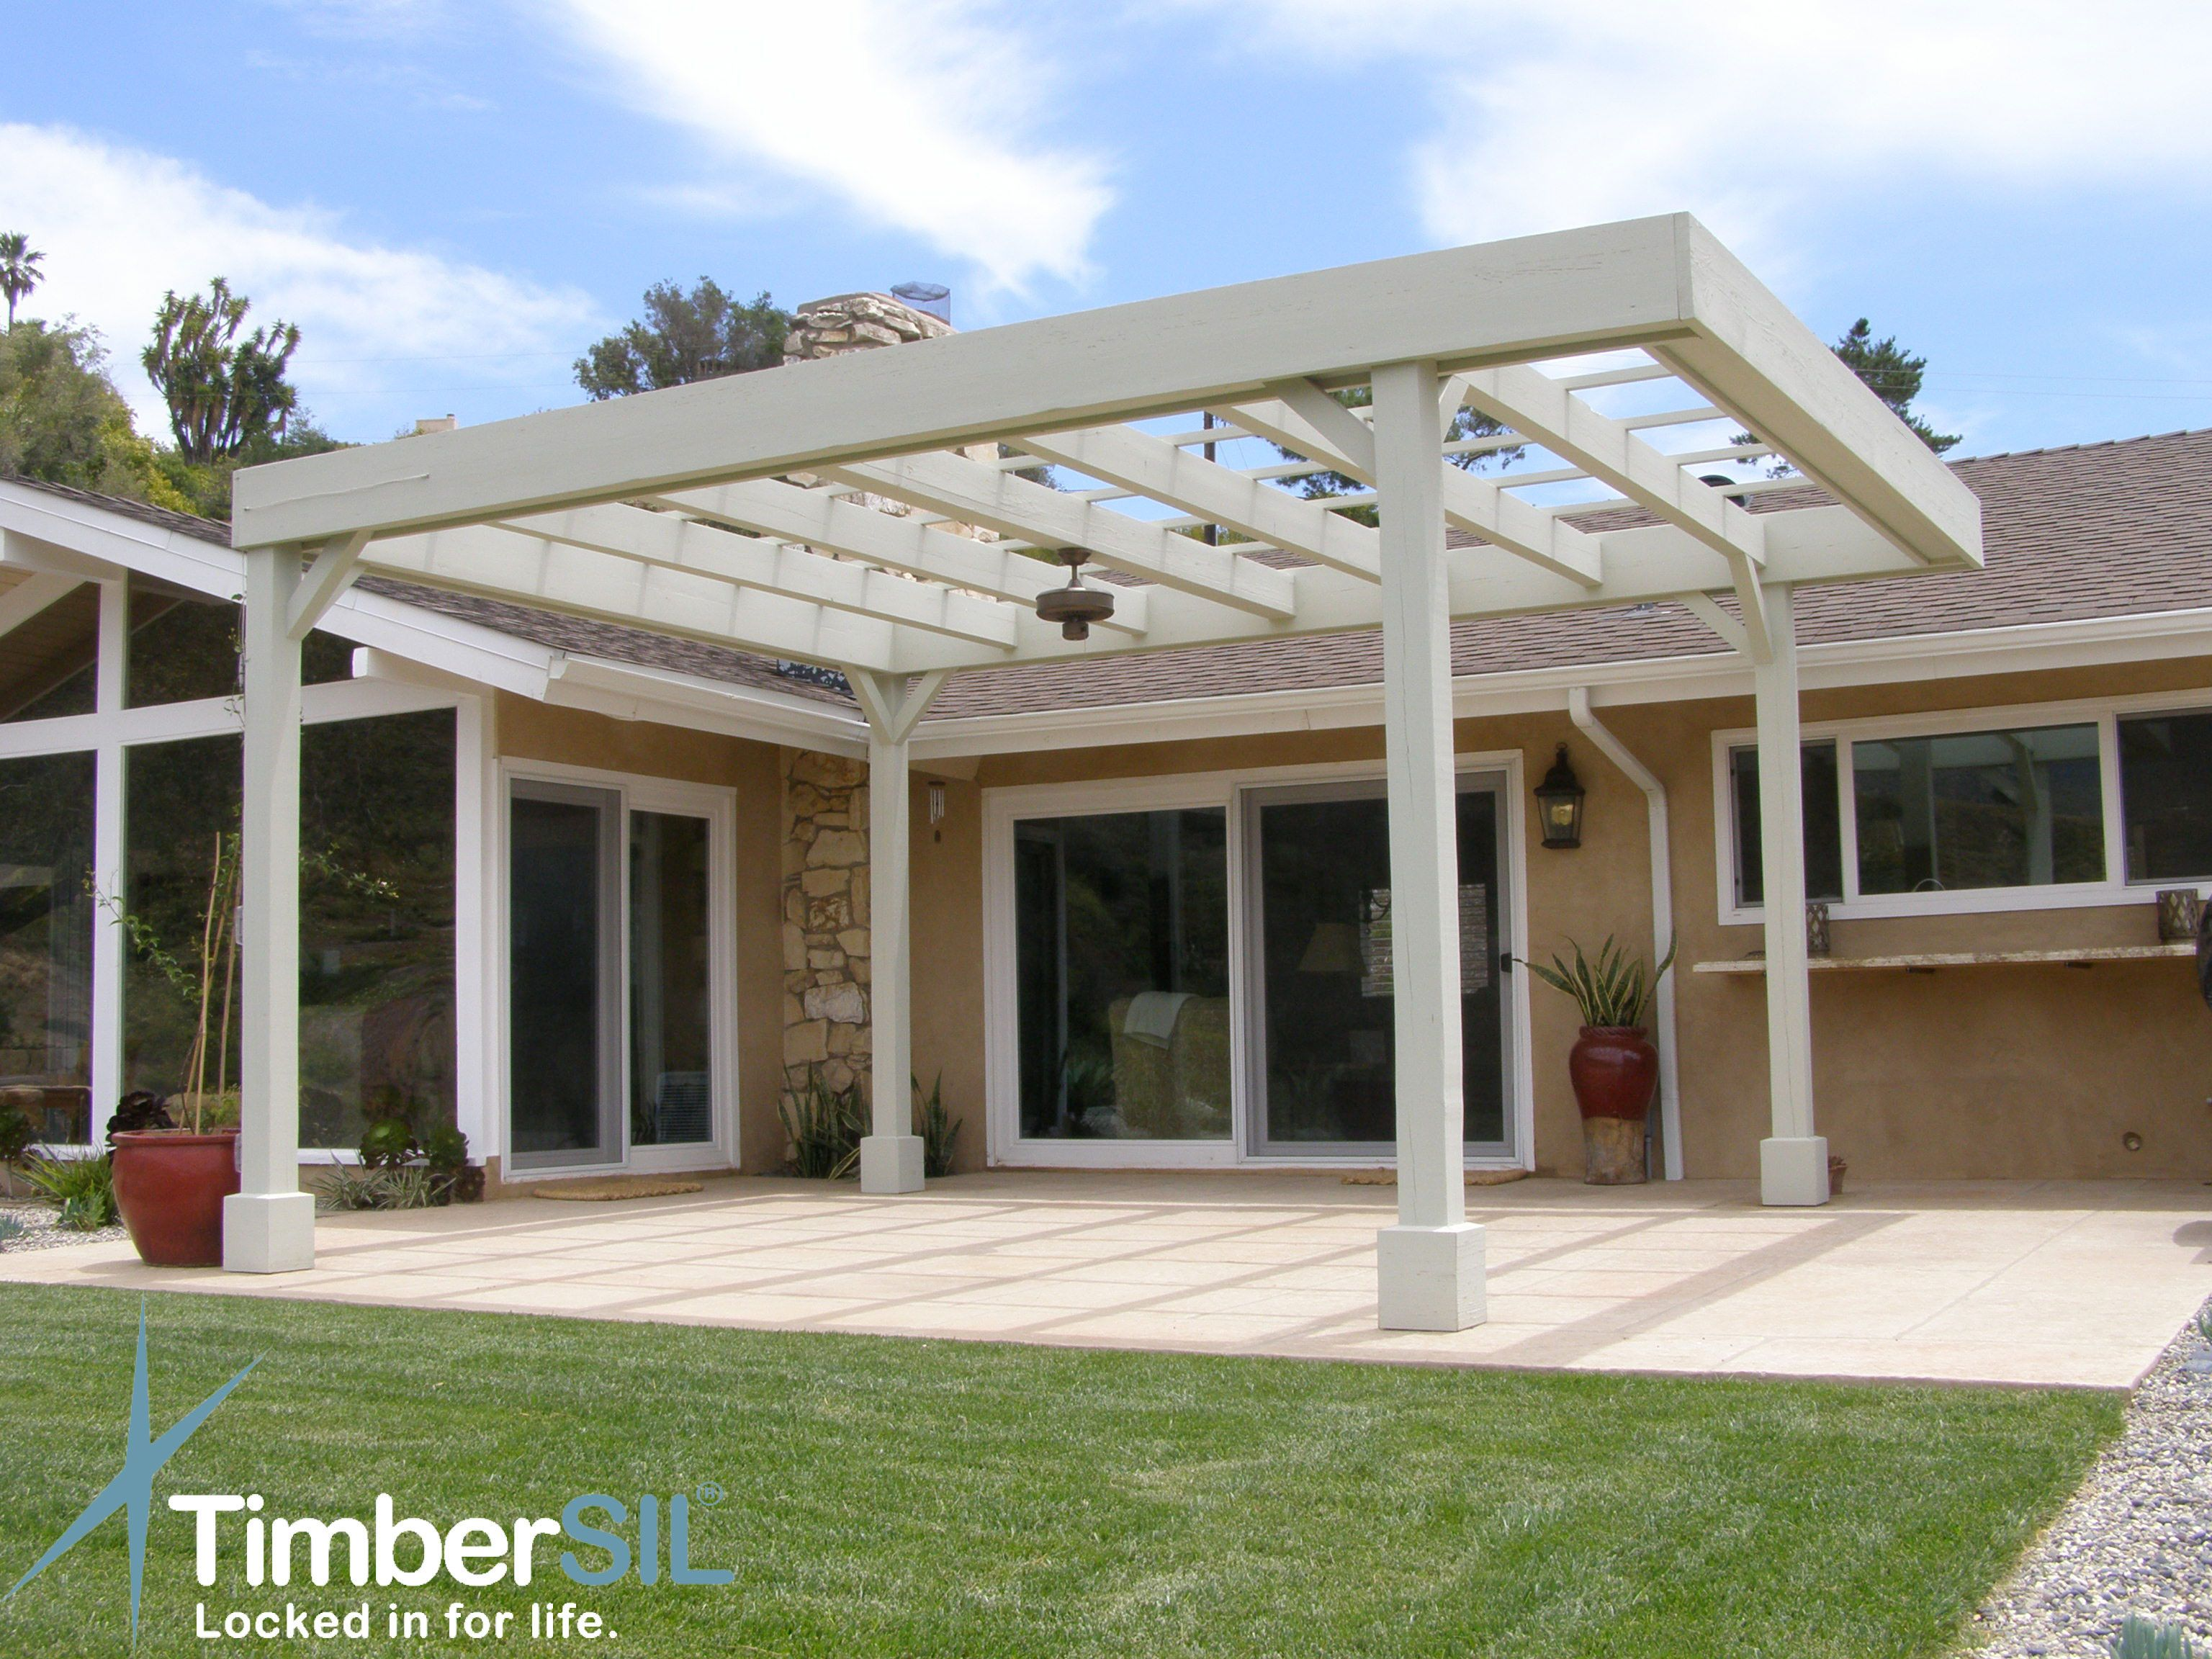 Lovely Prix Veranda En Kit Brico Depot Plans De Pergola Pergola Diy Pergola Design